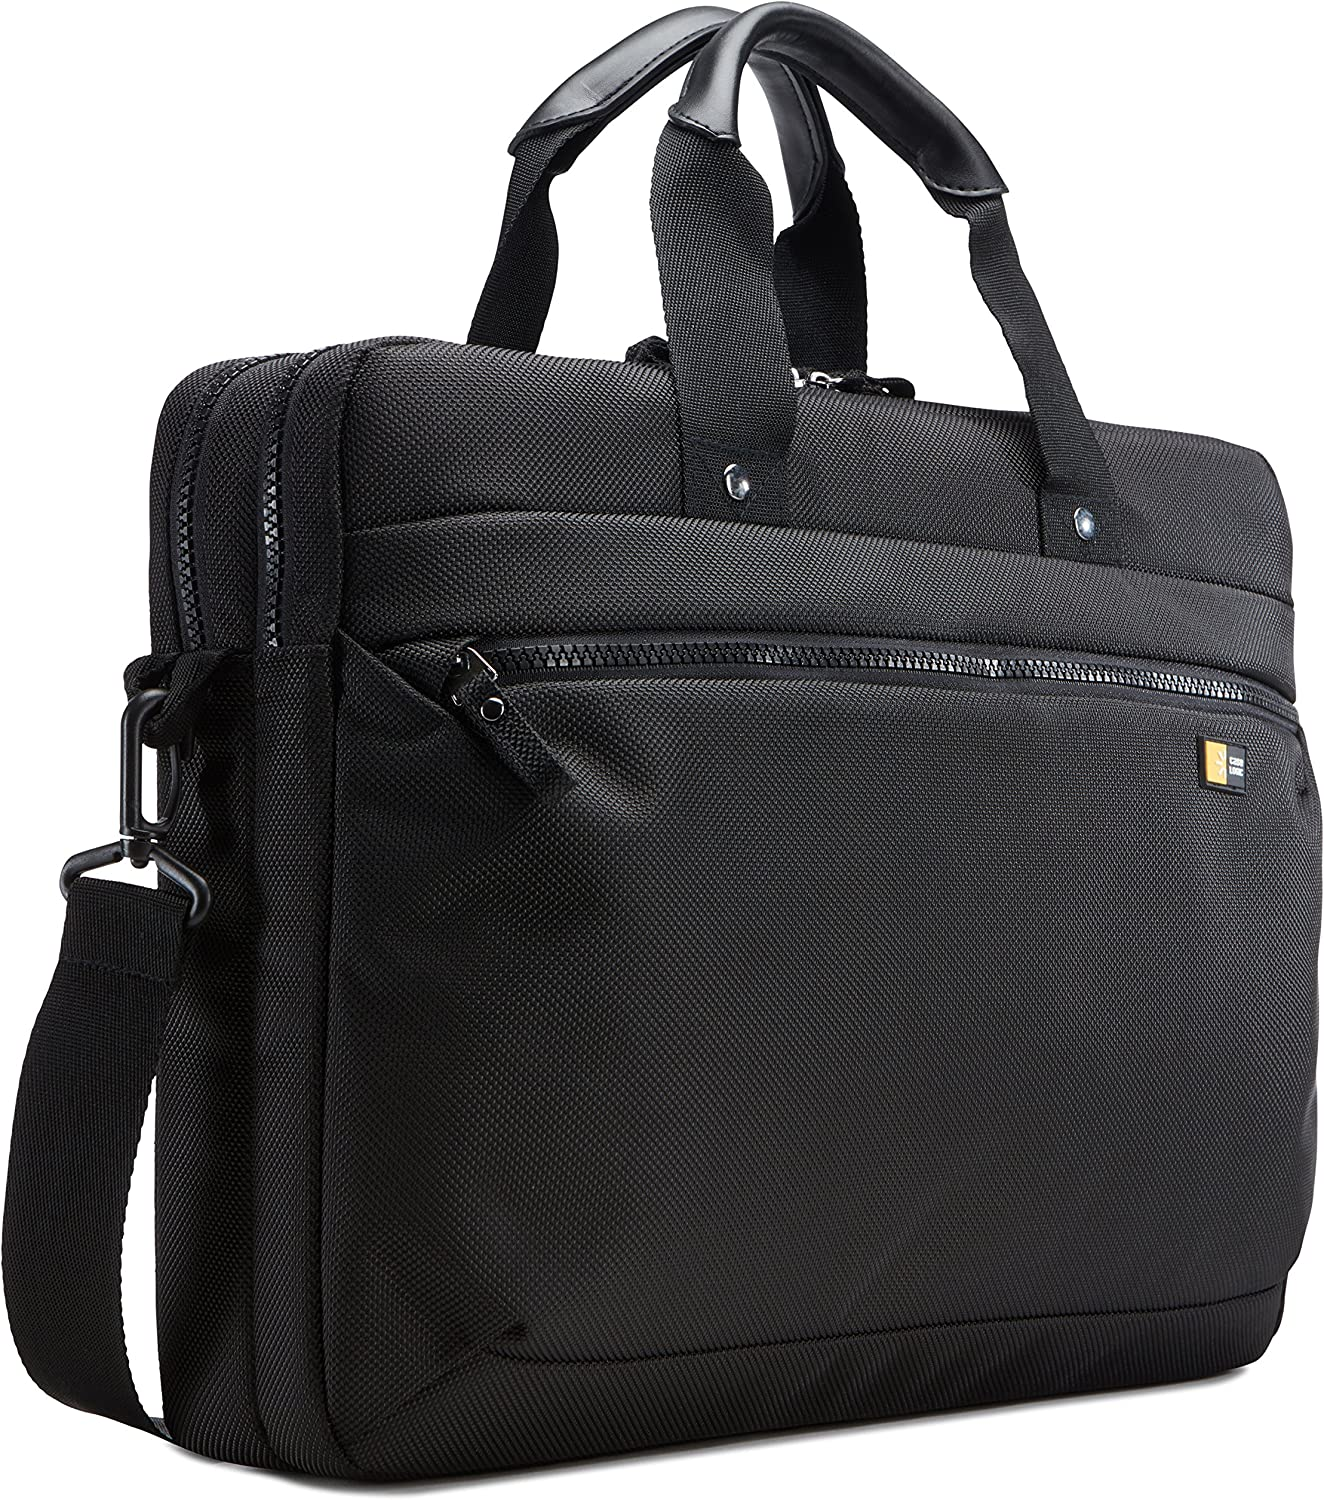 "Case Logic Bryker 15.6"" Laptop Bag (BRYB115), Black"